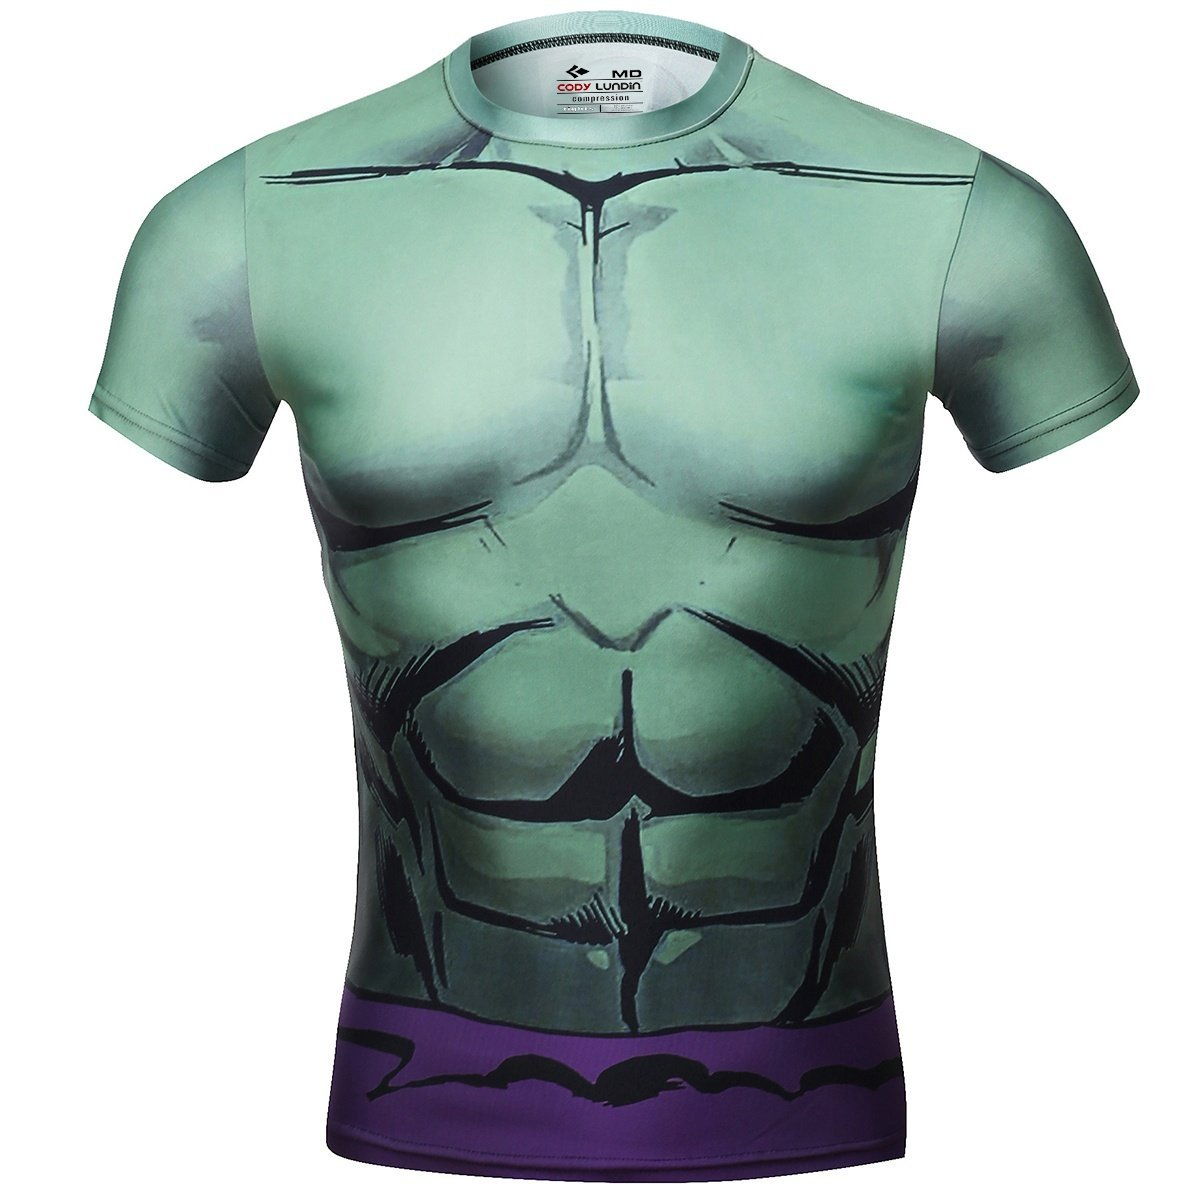 Red Plume Compression Armor Sports Fitness Shirt, Avengers Hulk T-shirt